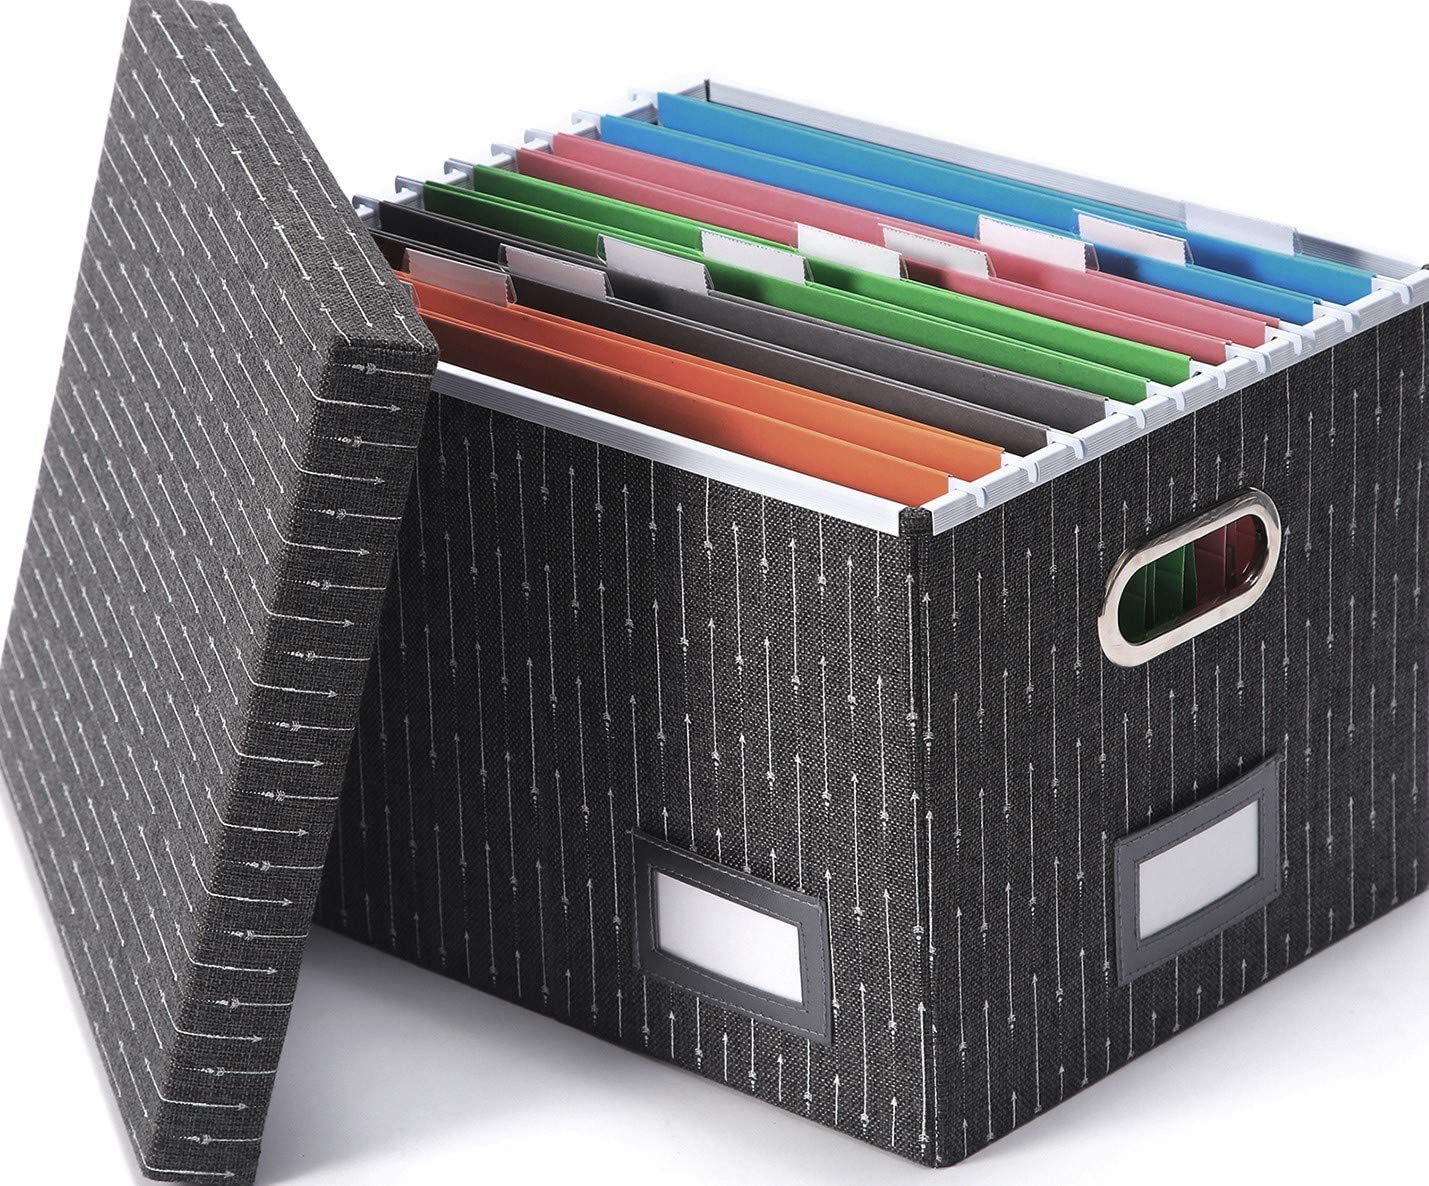 Decorative File Organizer Box - Portable Filling Storage System for Documents and Hanging File Folders Organization by Trizo